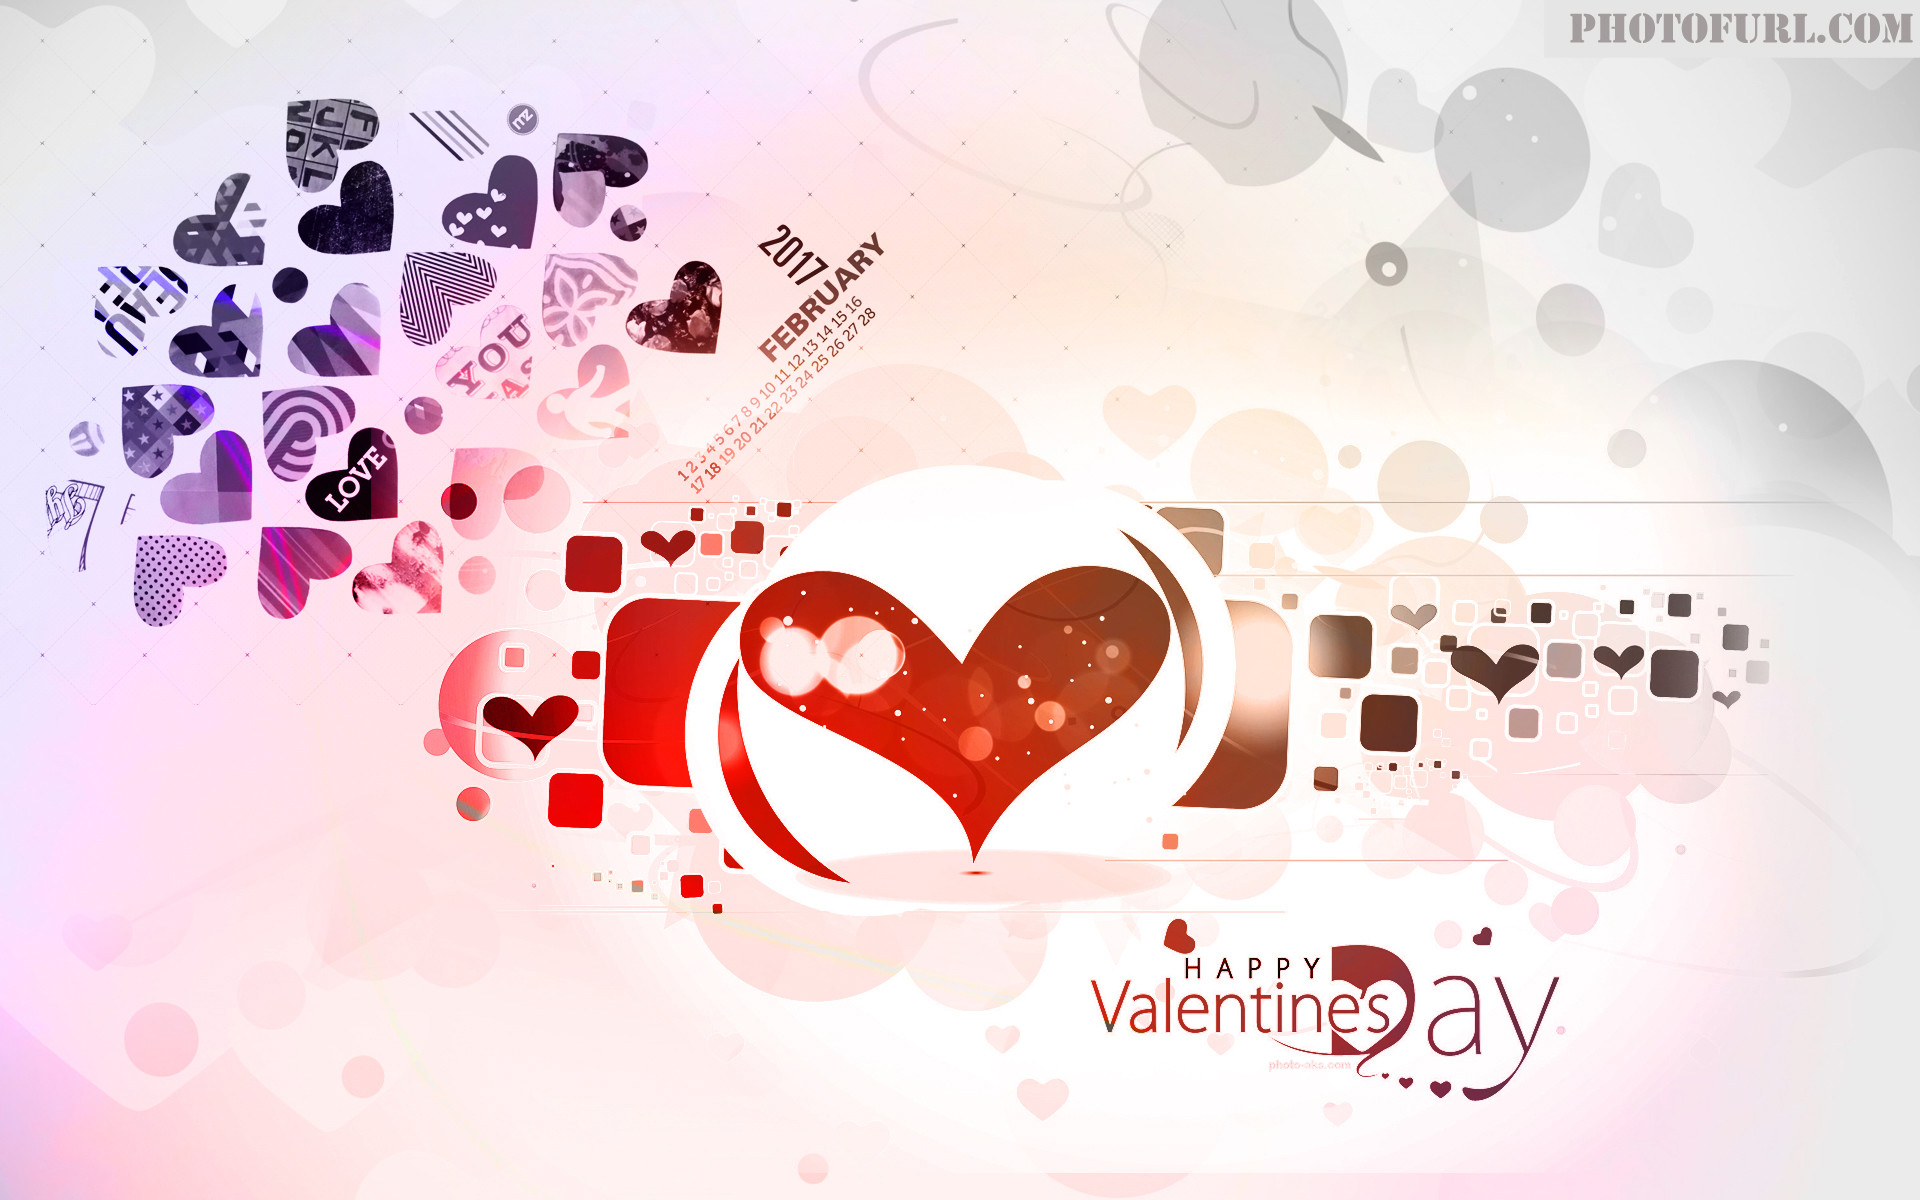 Download Free Happy Valentine Day HD Wallpapers 2017